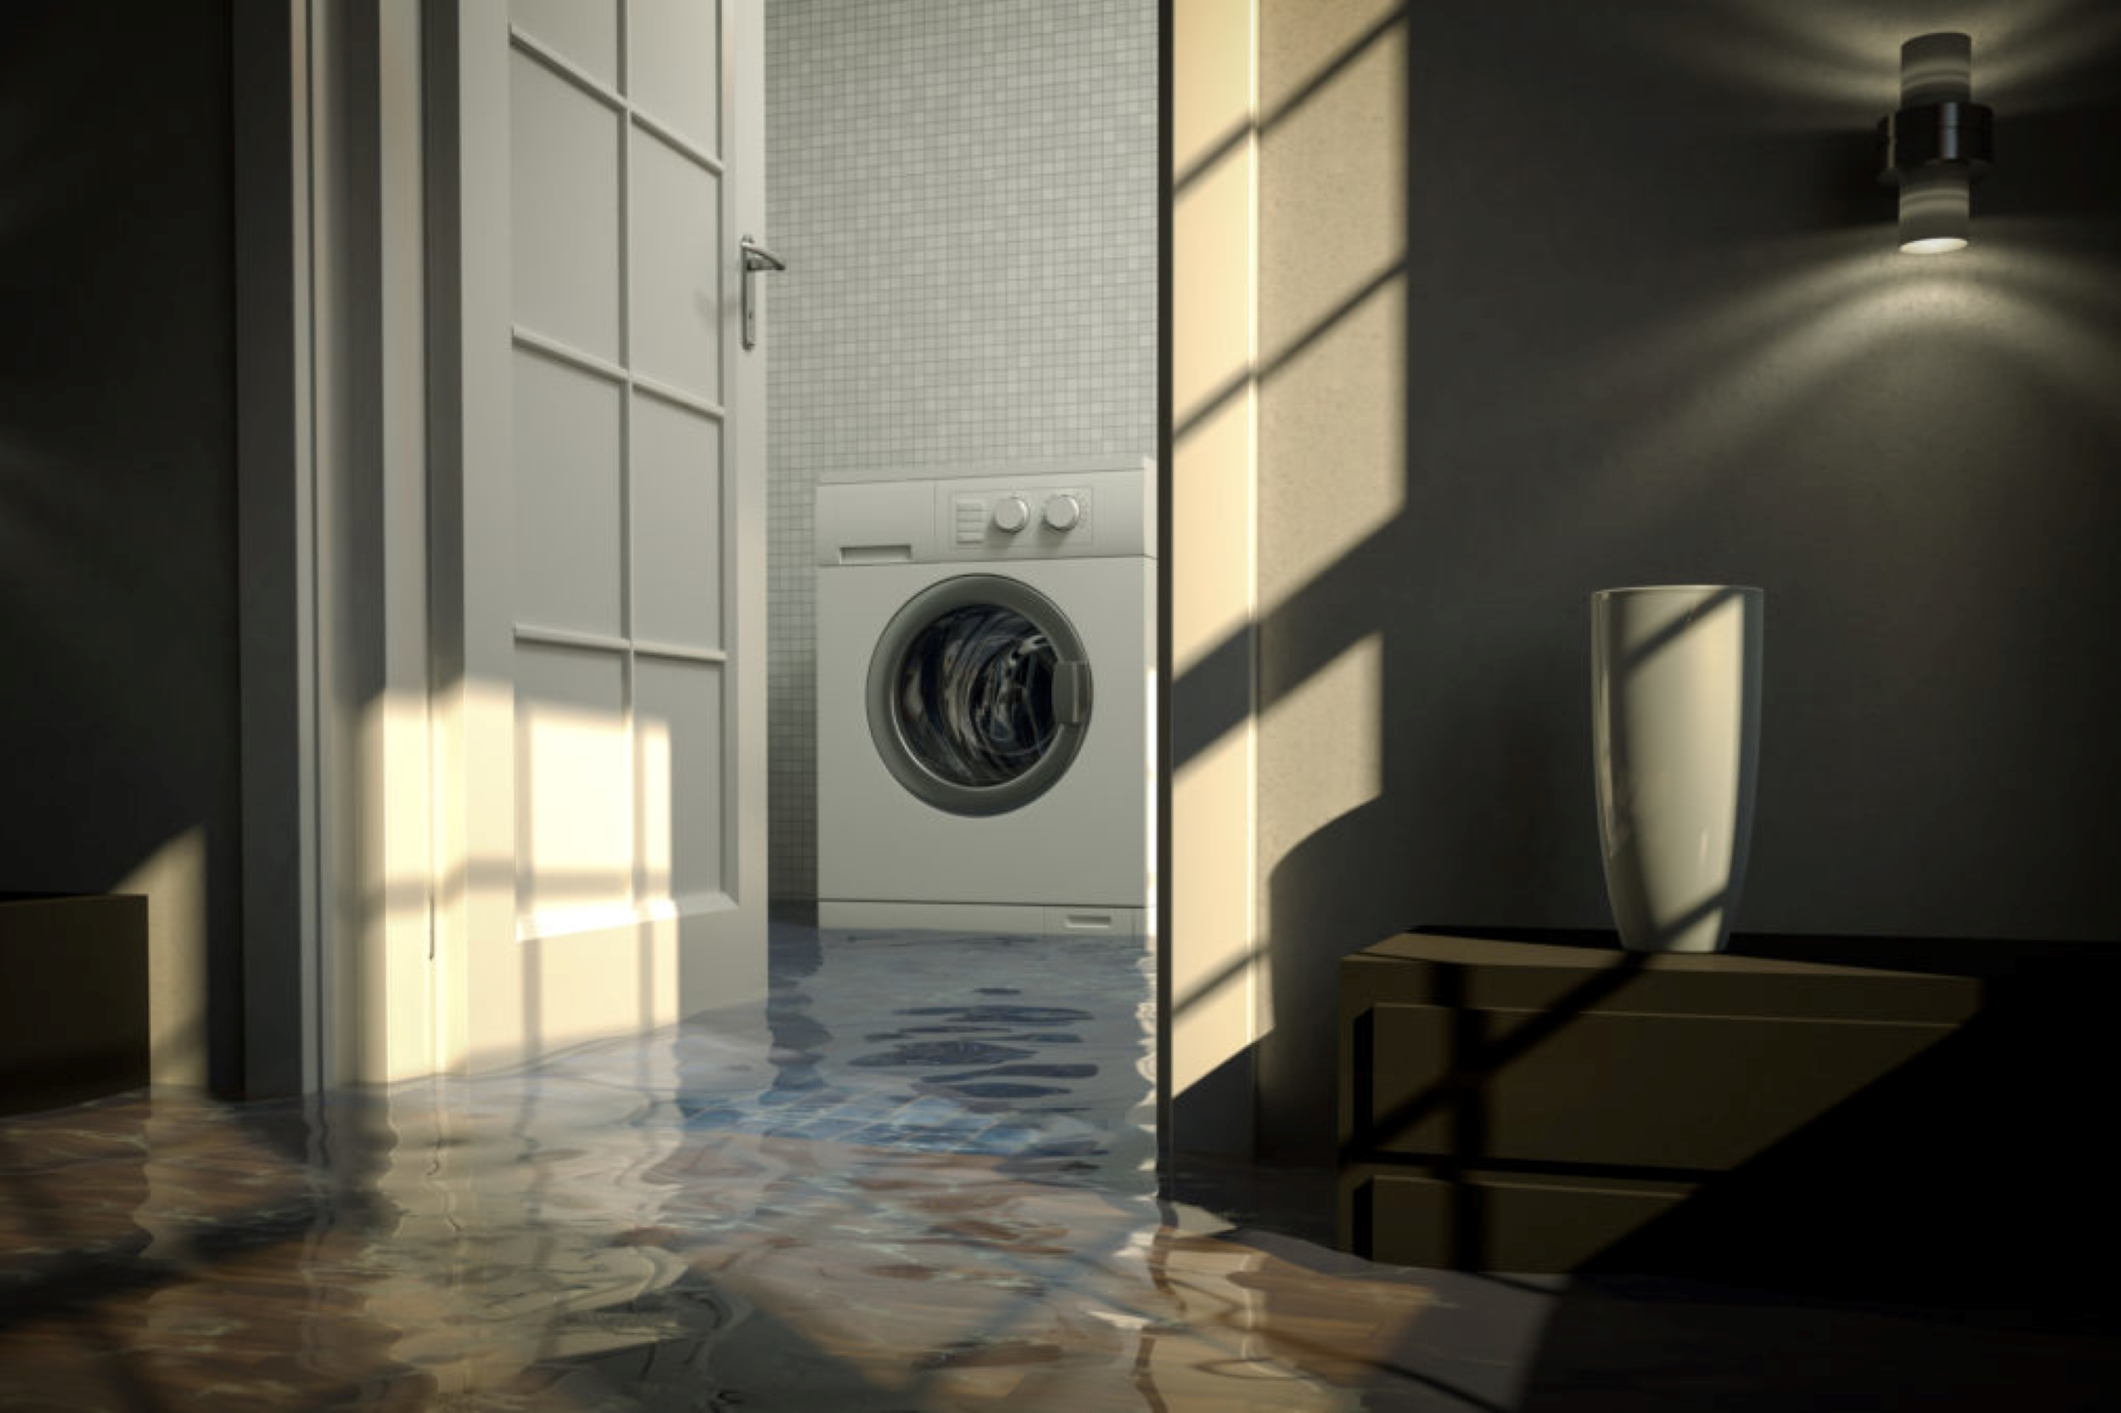 5 Preventative Tips to Flood Proof Your Home in Alberta